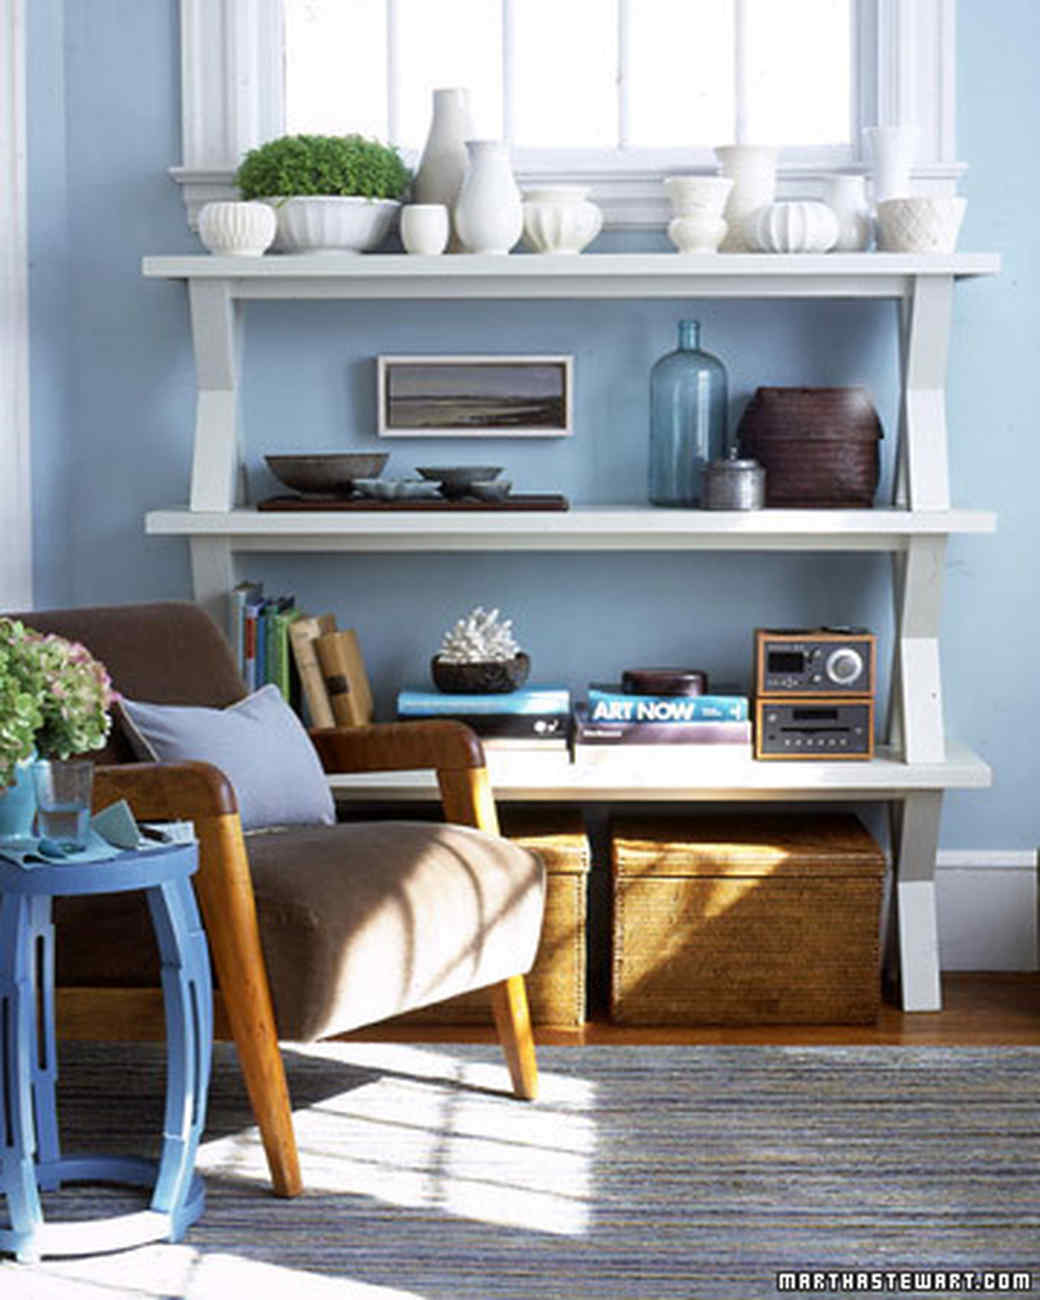 Repurposed Furniture And Decor Martha Stewart